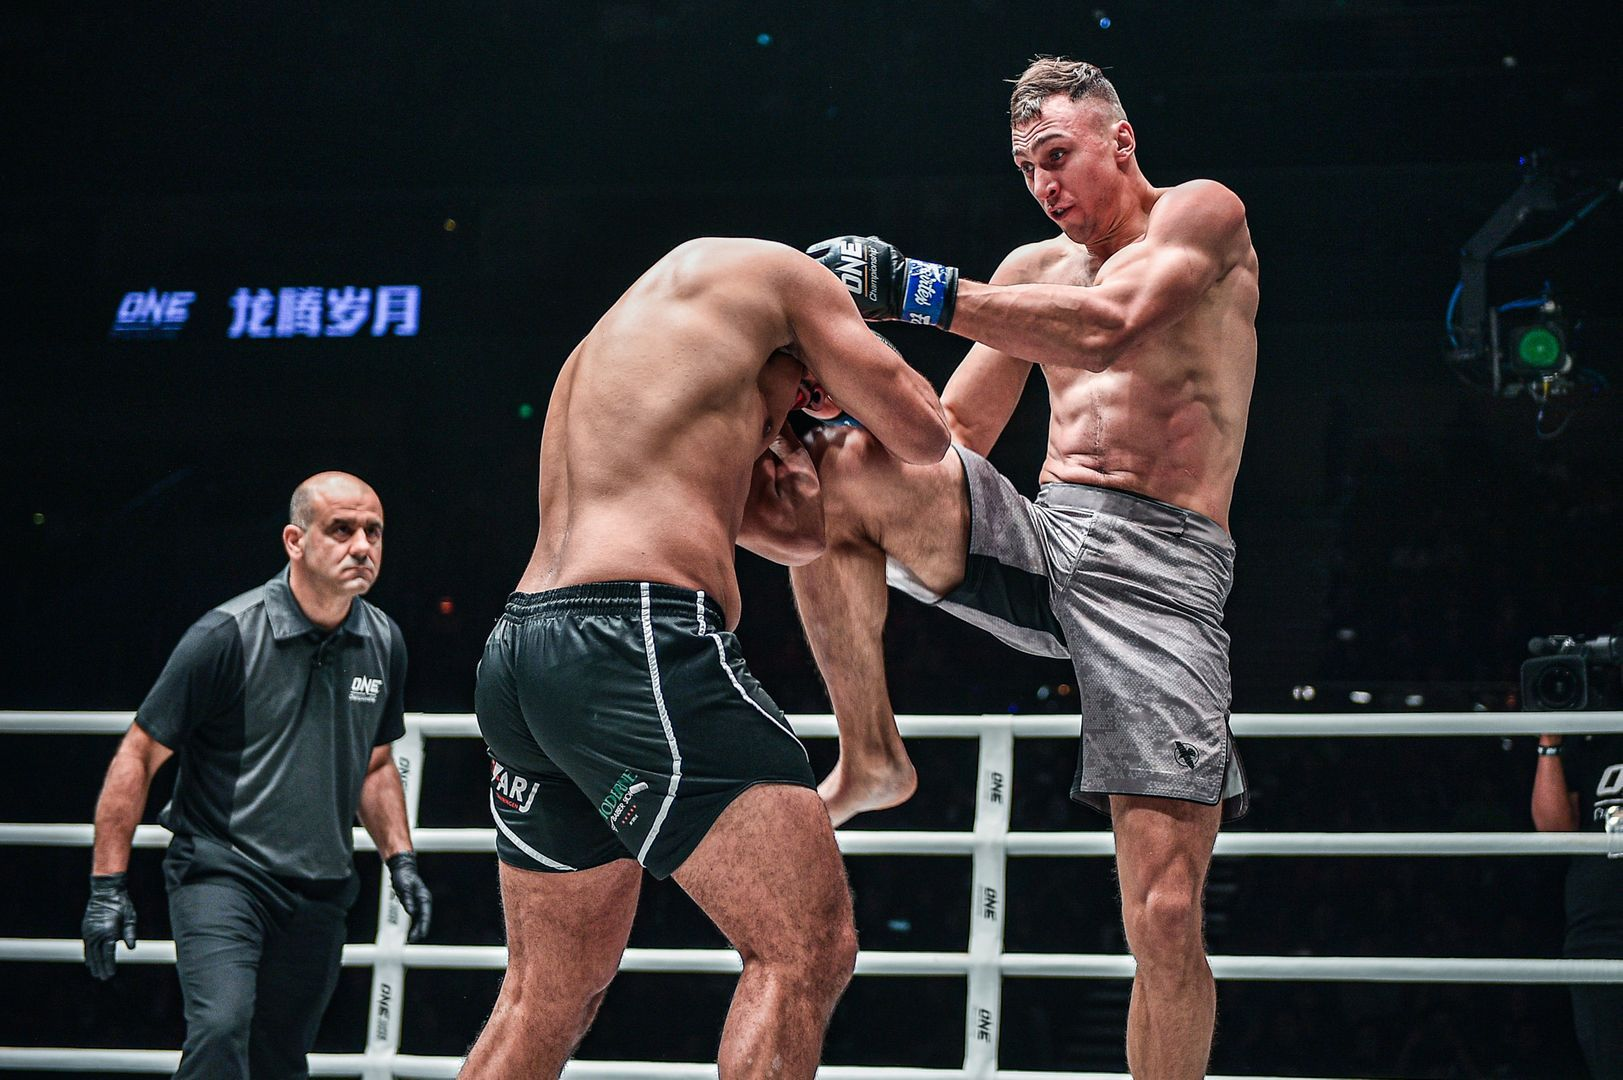 ONE Light Heavyweight Kickboxing World Champion Roman Kryklia connects with a knee to the head